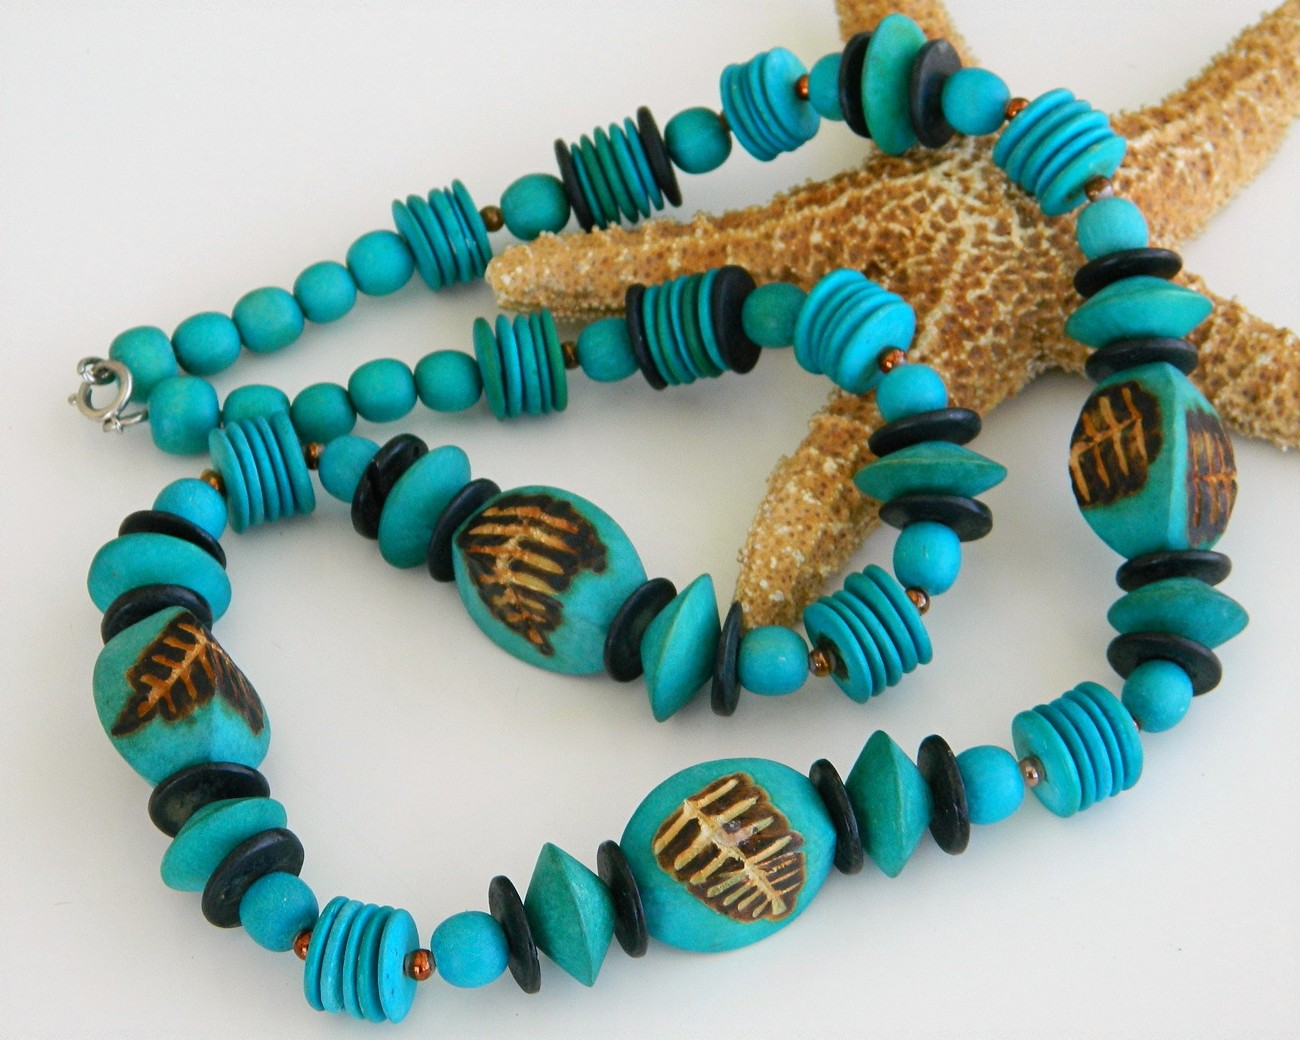 Vintage Handmade Wooden Necklace Chunky Turquoise Beads Long